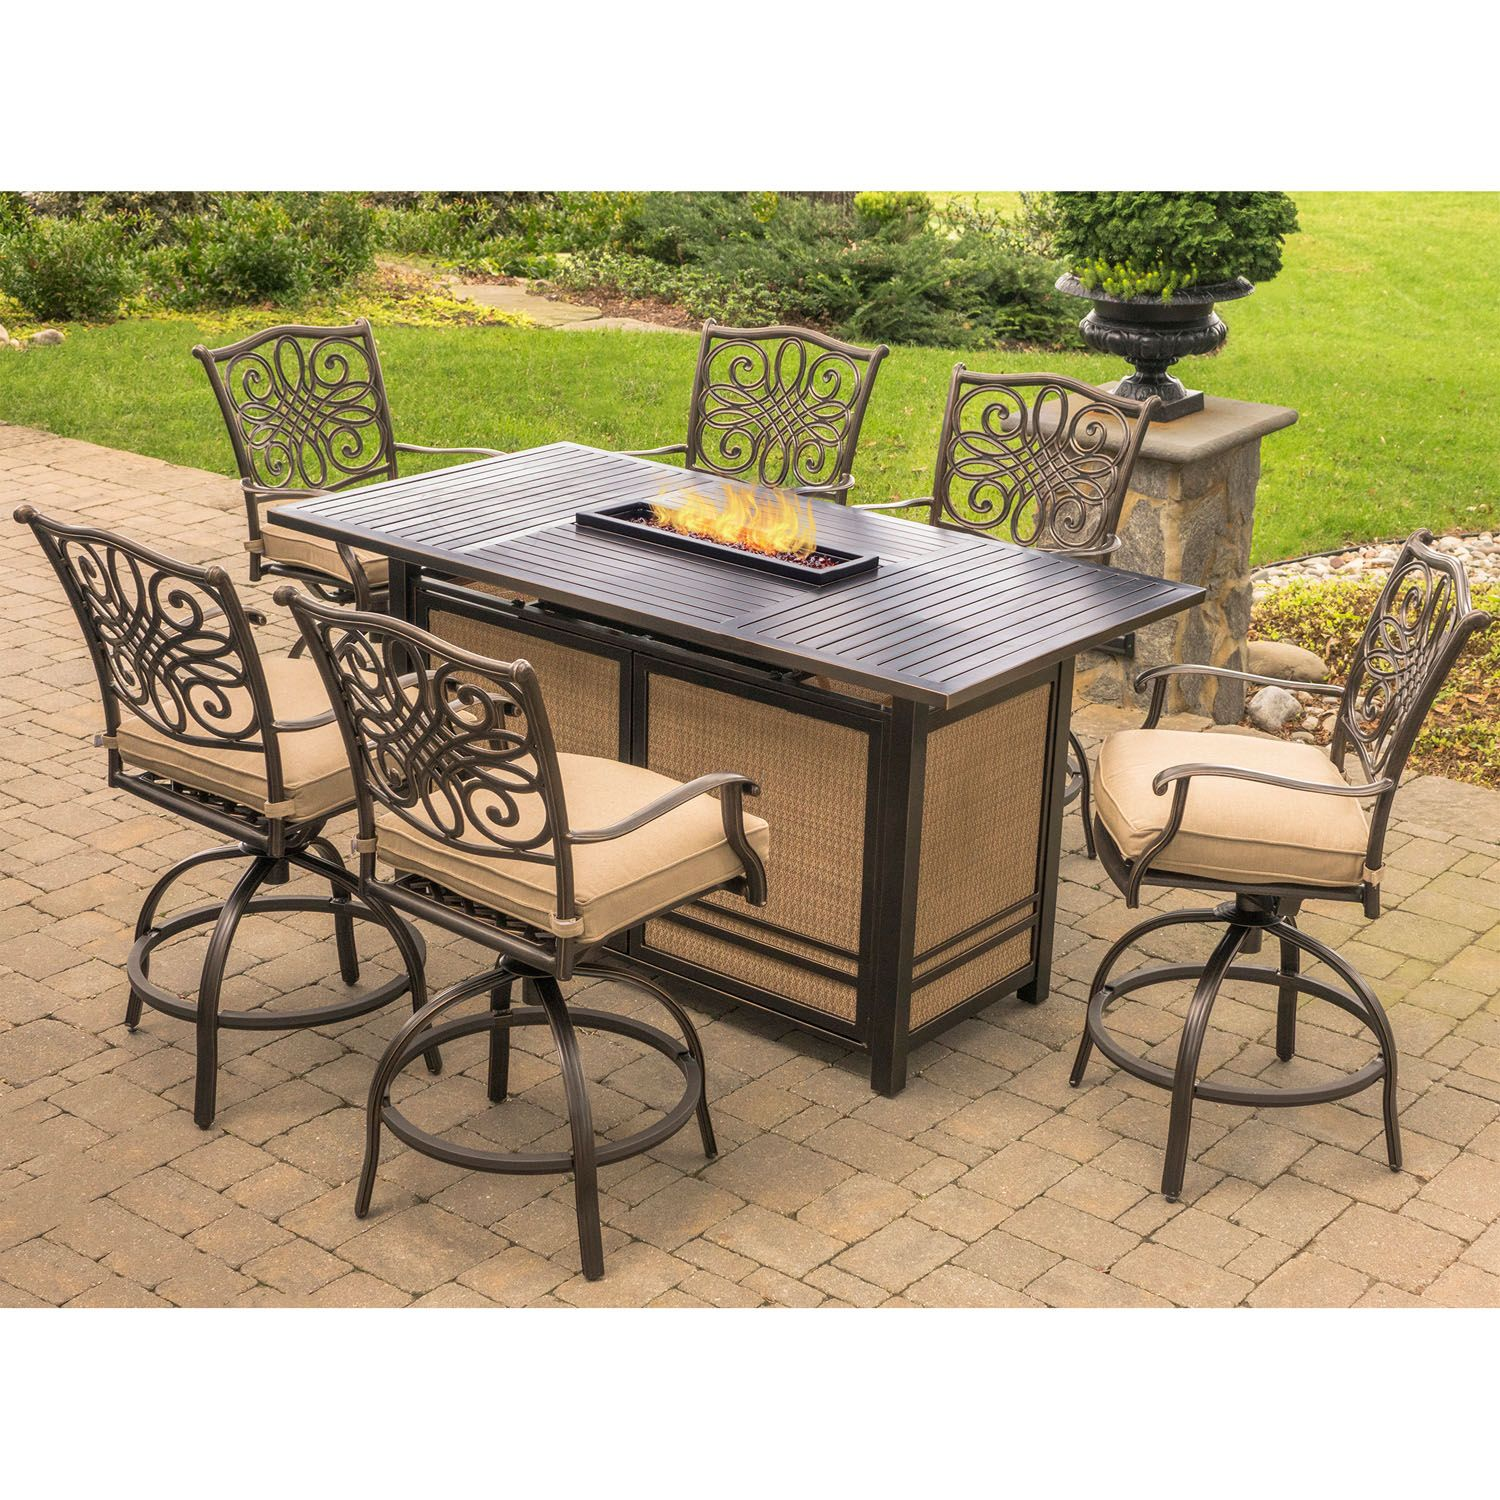 Hanover Traditions 7 Piece High Dining Set In Tan With 30 000 Btu